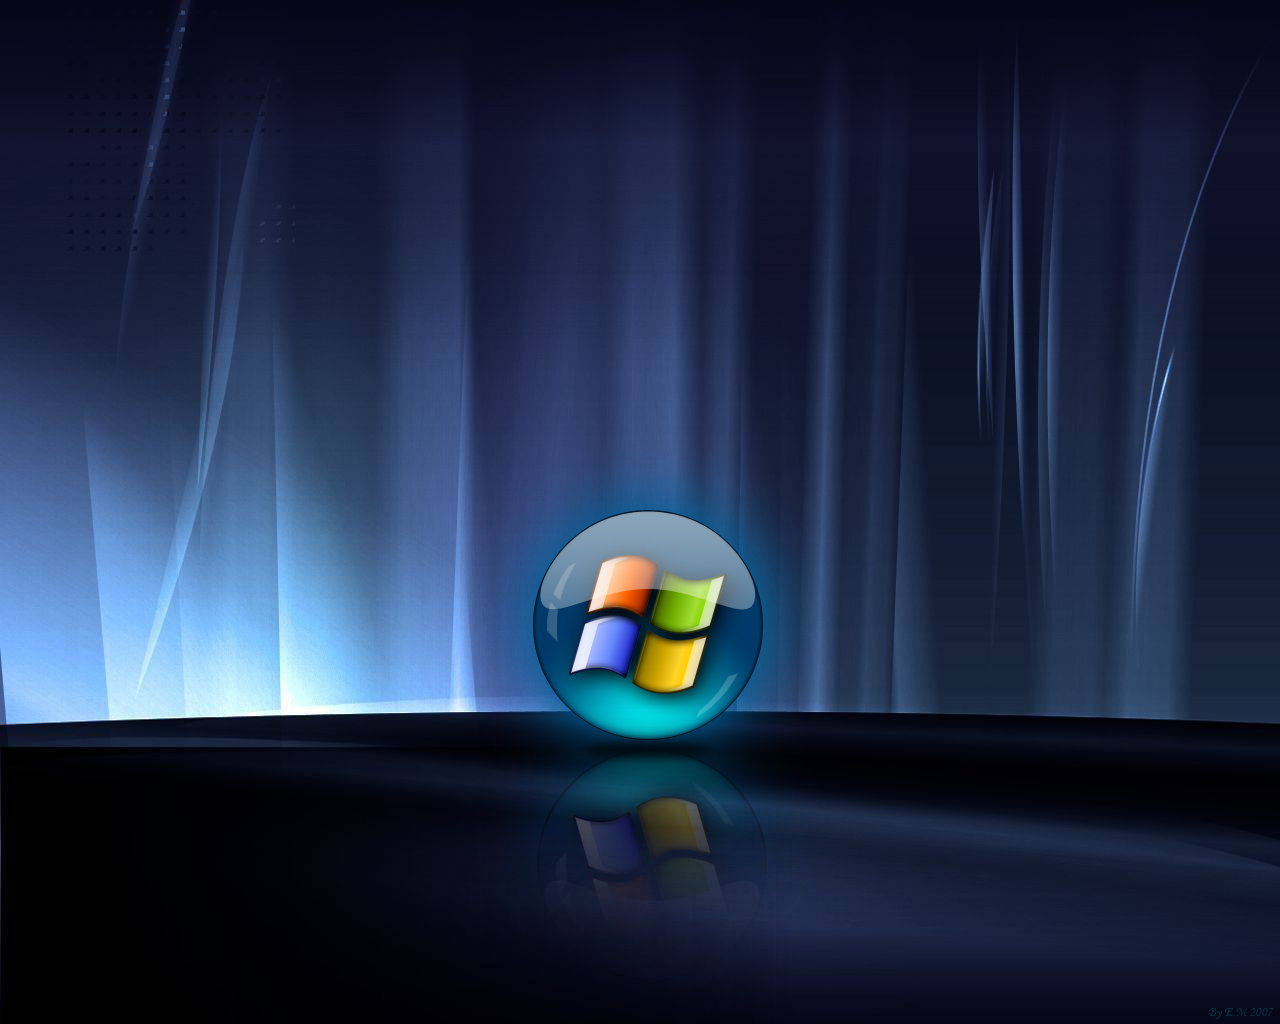 Abstract Microsoft Windows Wallpaper Vista Wallpaper